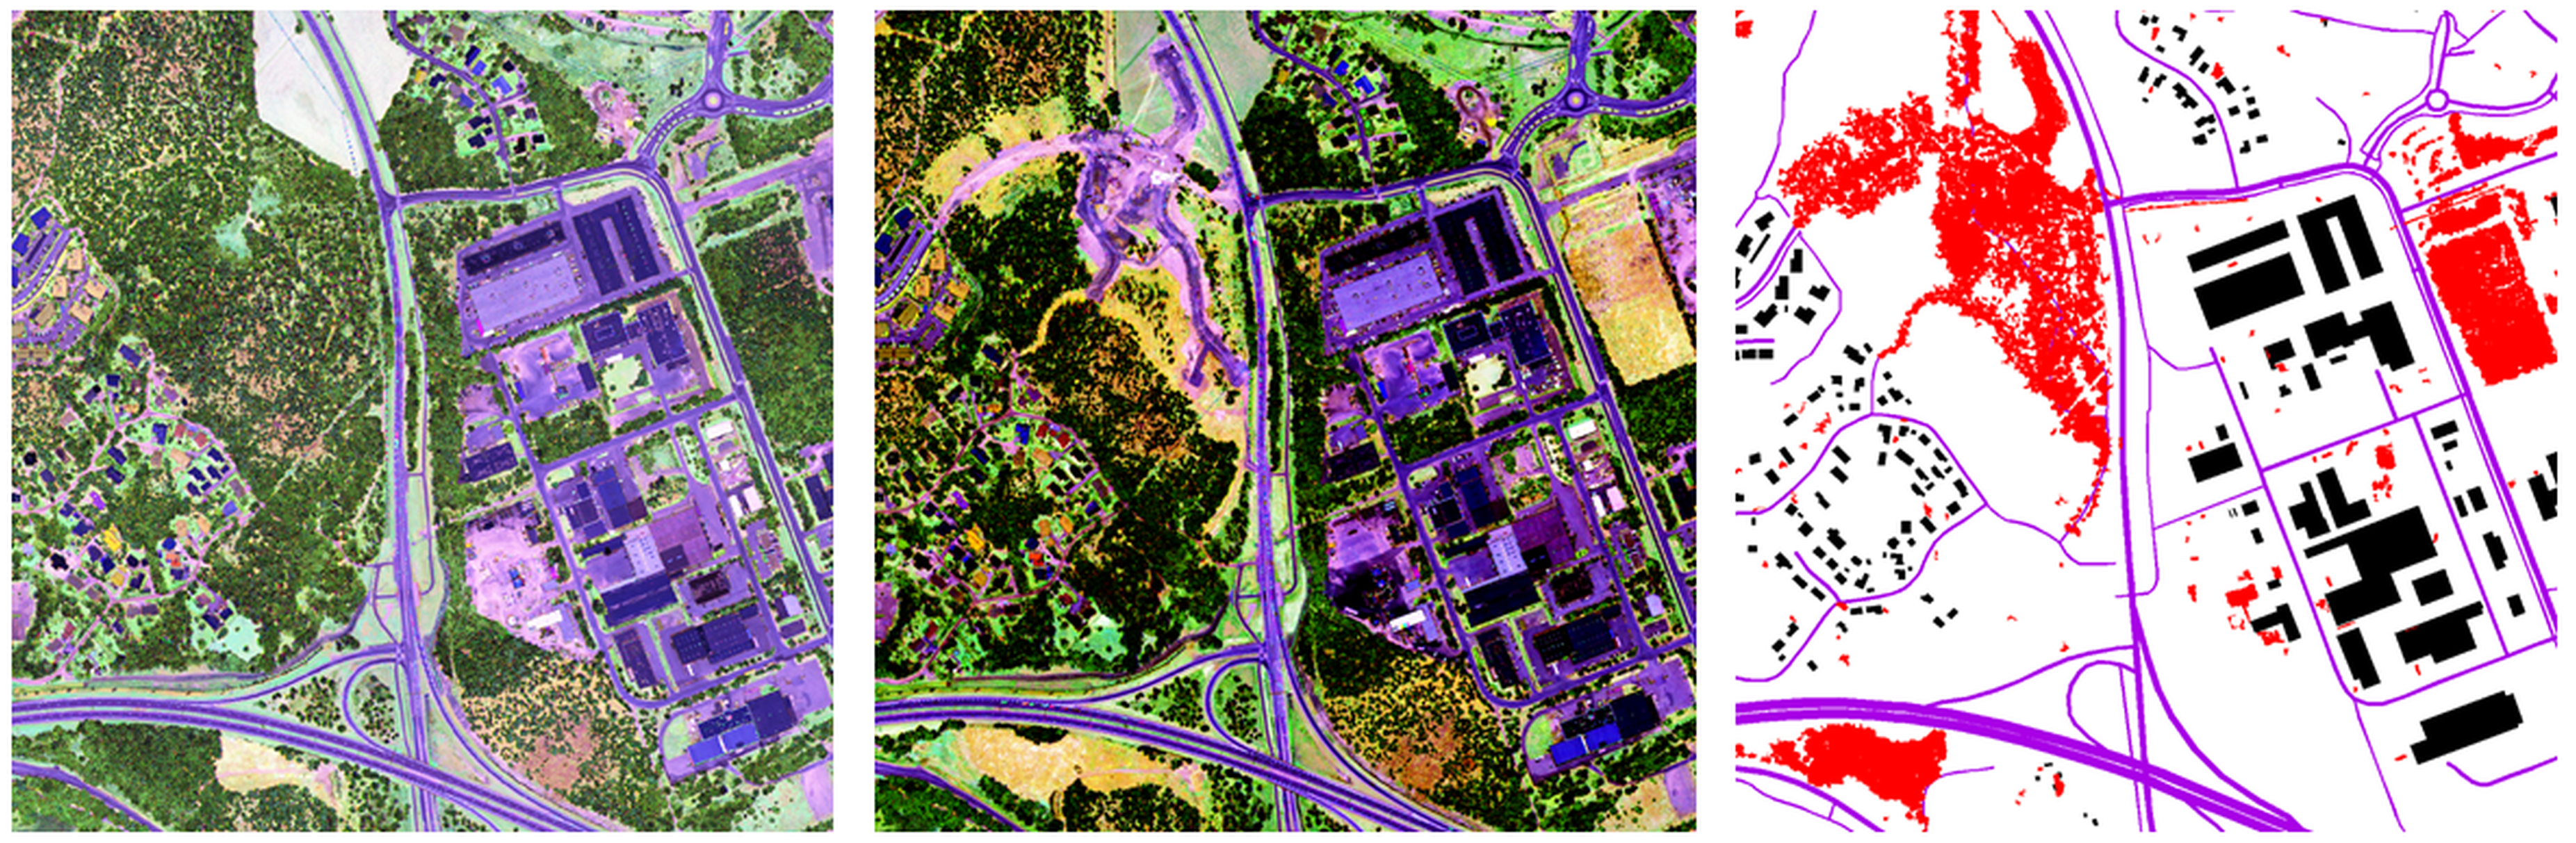 Intensity images from Optech Titan airborne laser scanner data from two dates and automatically detected changes presented in red colour with map data. Finnish Geospatial Research Institute FGI, The National Land Survey of Finland; Contains data from the National Land Survey of Finland Topographic database 2015.